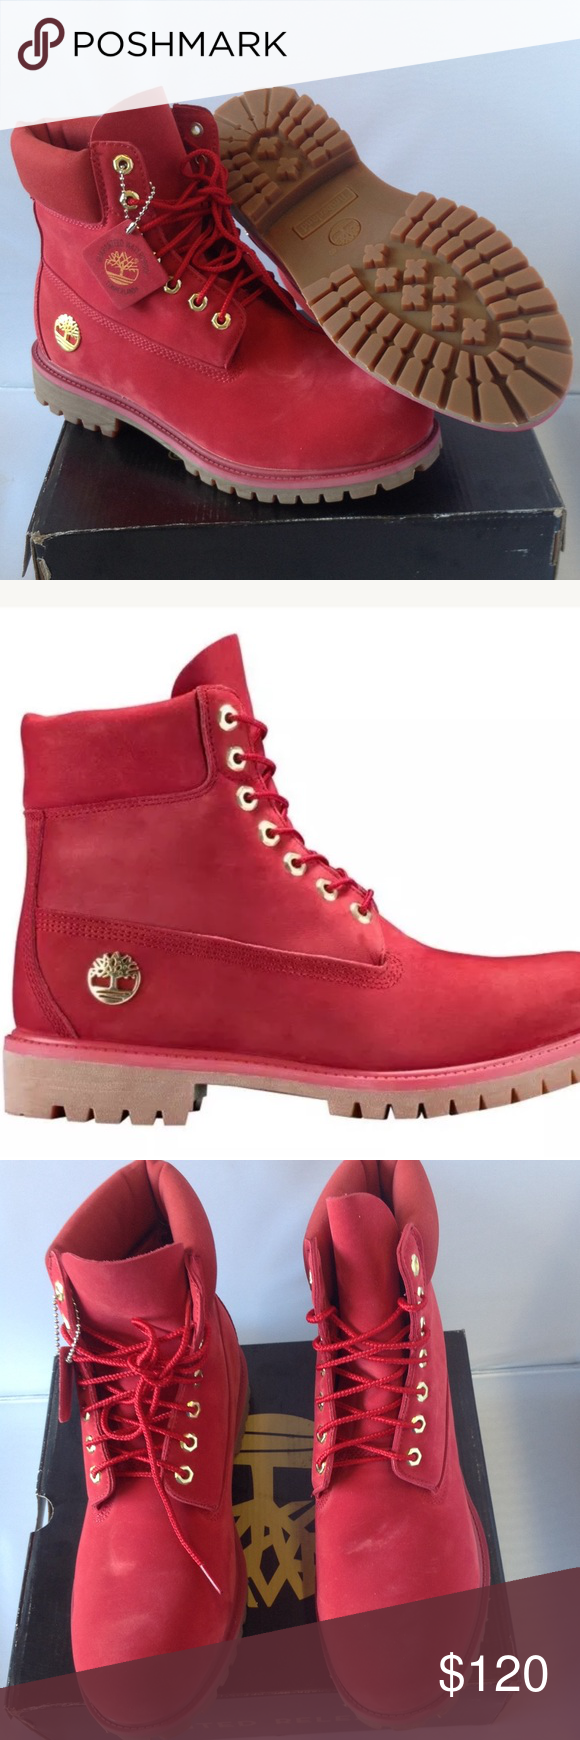 3d66feb1a2f6 Timberland men s waterproof boots. Size 10 Fire   Water collection takes  its inspiration from nature s